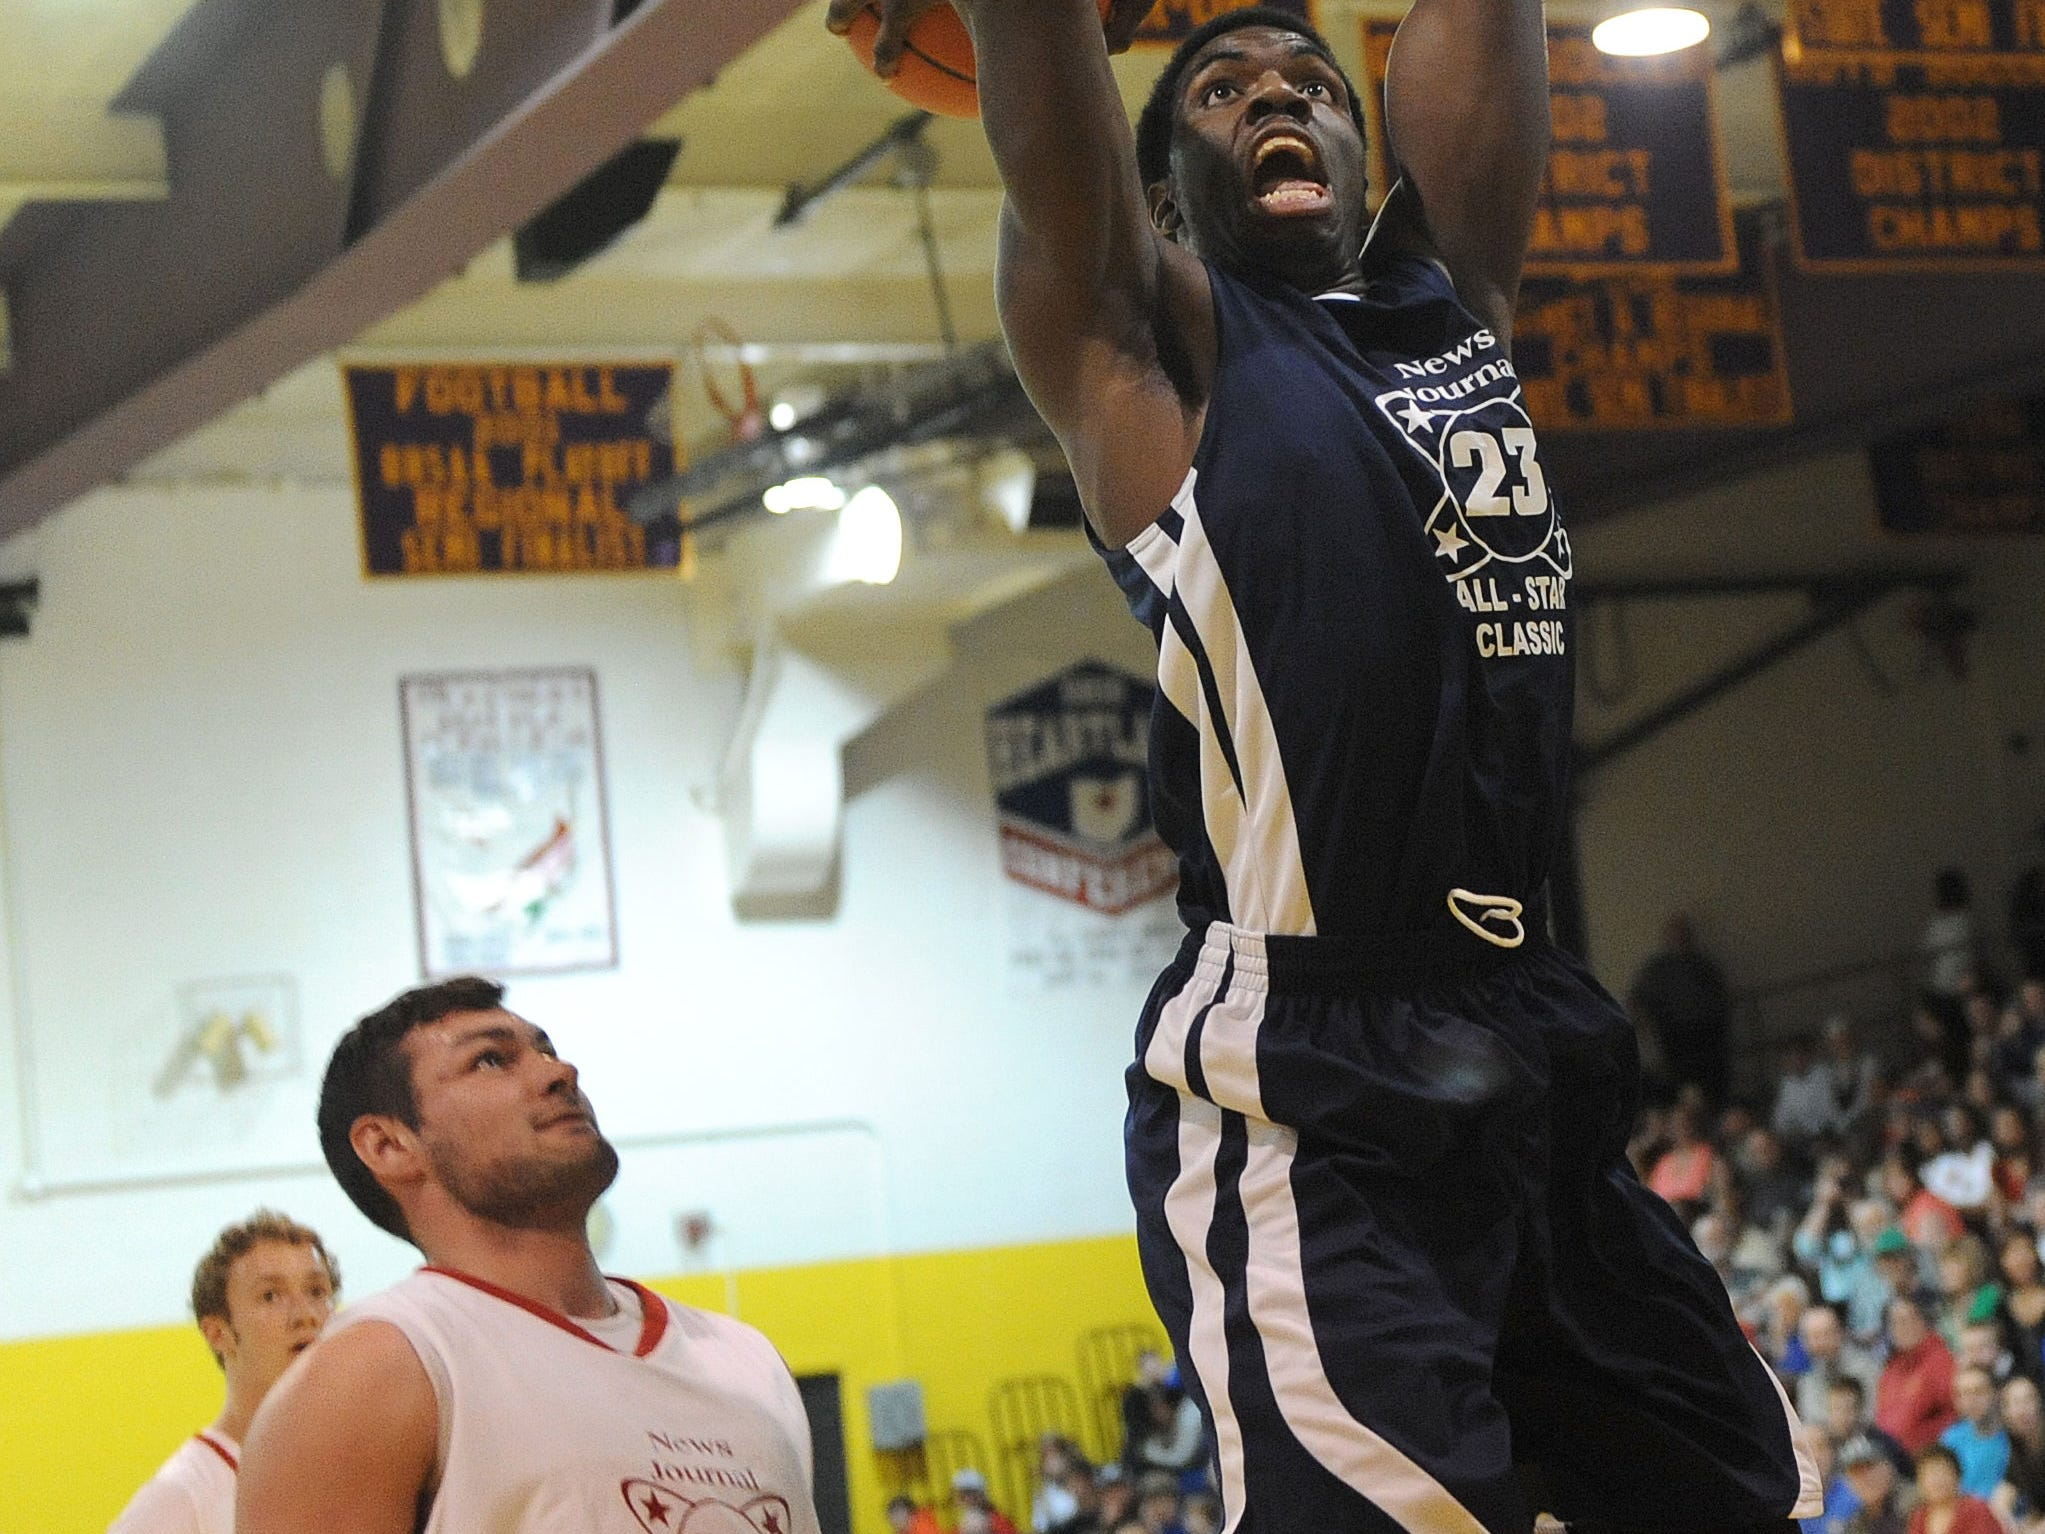 Tyrell Edmiston dunks the ball during the 37th annual News Journal All-Star Basketball Classic at Lexington High School.